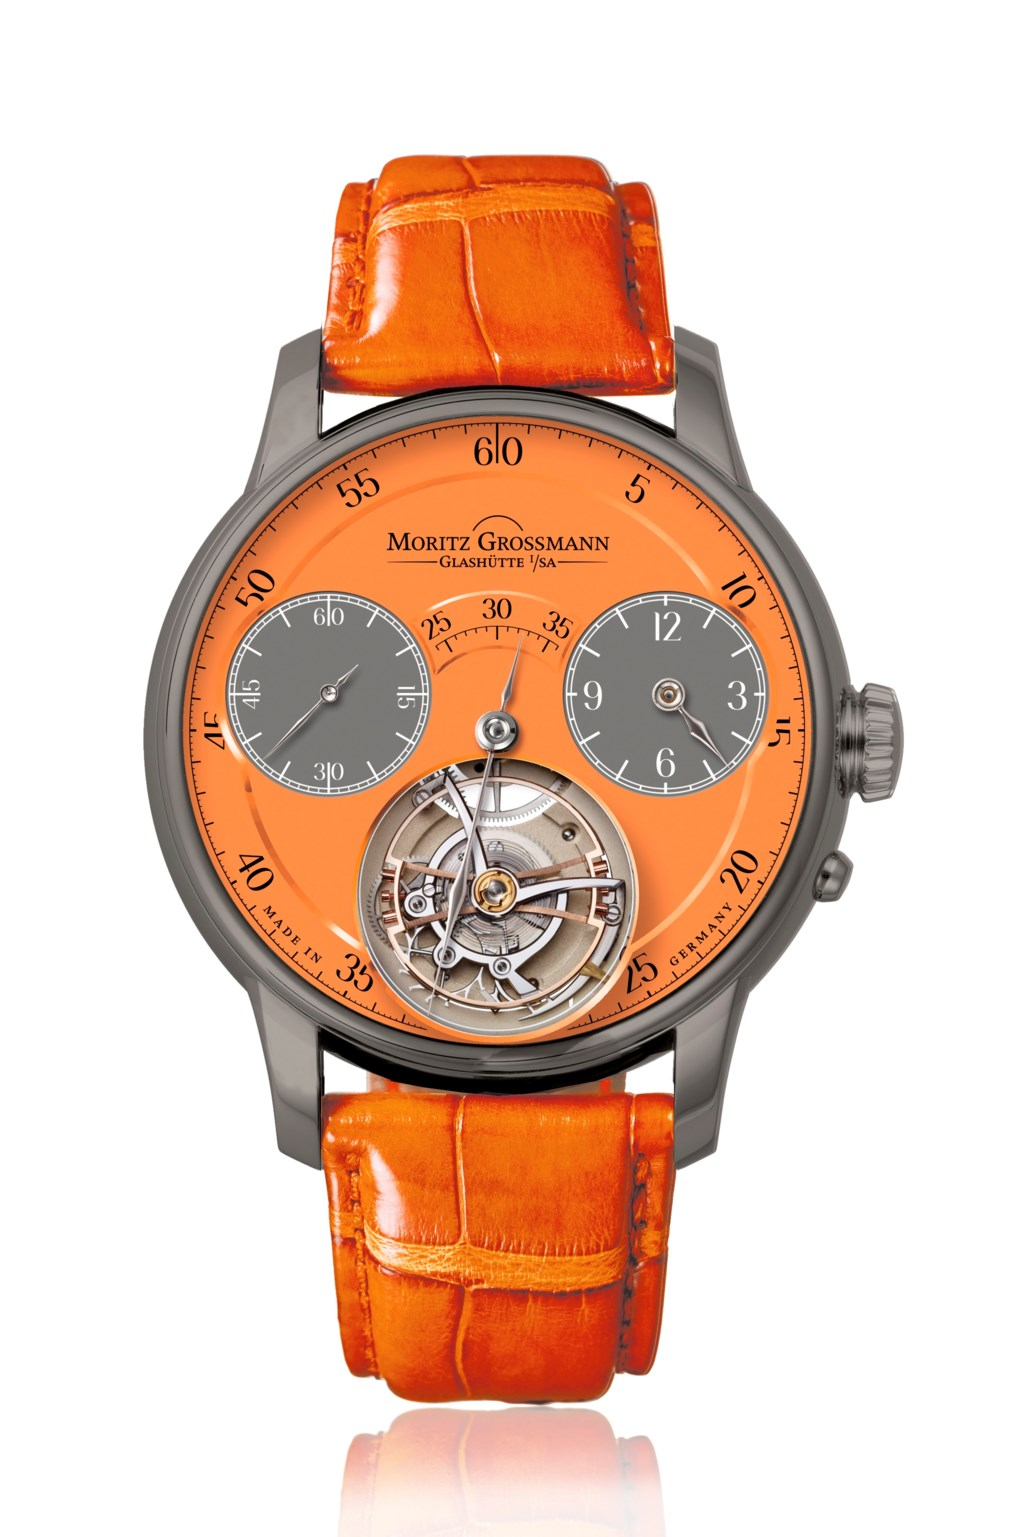 MORITZ GROSSMANN, BENU TOURBILLON ORANGE TITANIUM, MG-002066